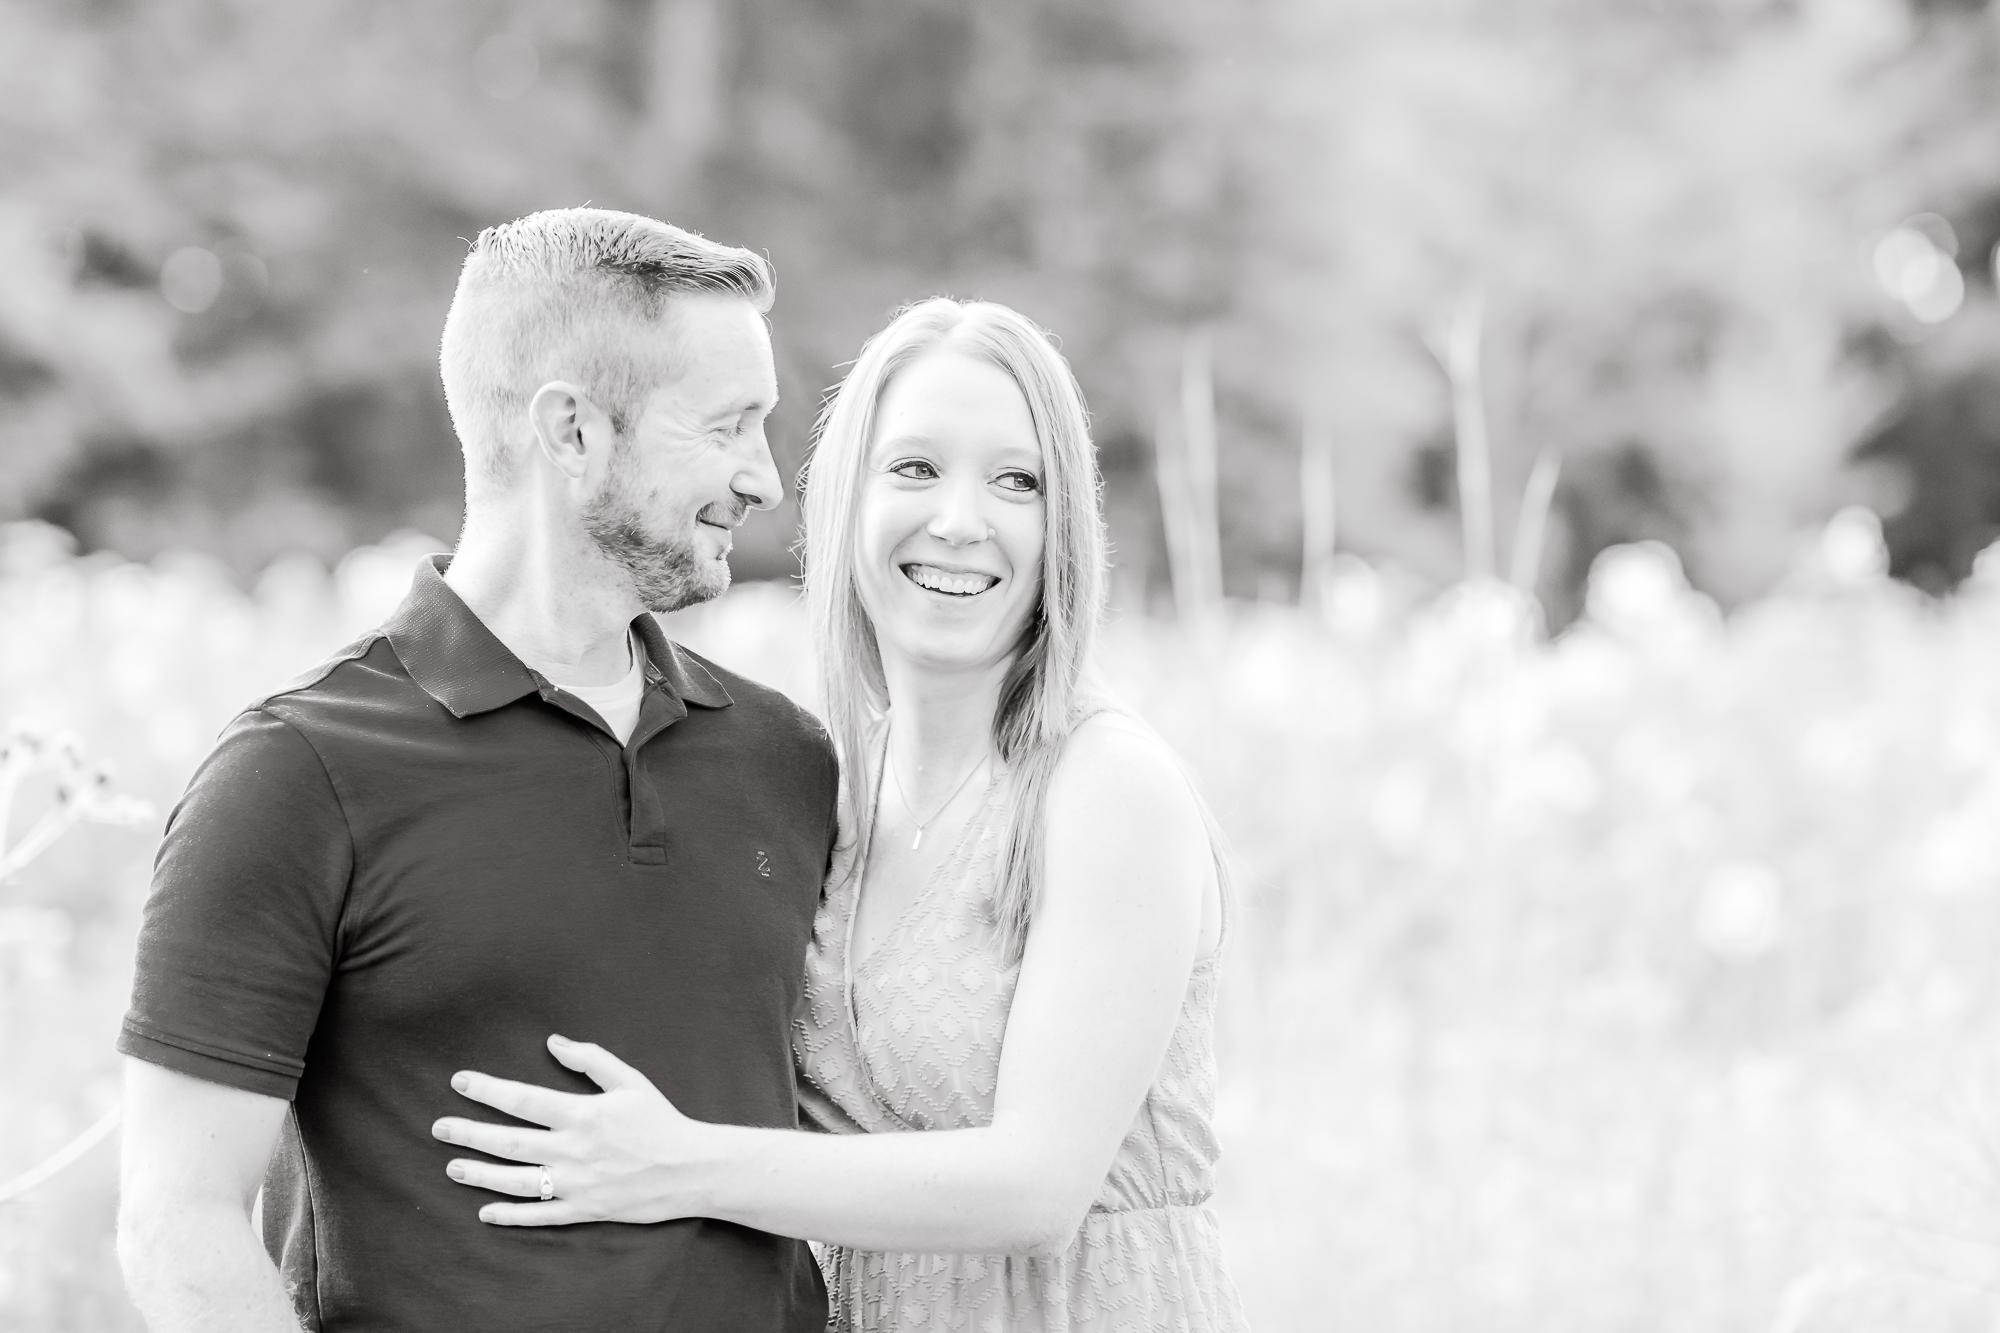 AB Favorites_Katy+Brian_Engagement Session_Brecksville Reservation_Brecksville_Ohio-21.jpg